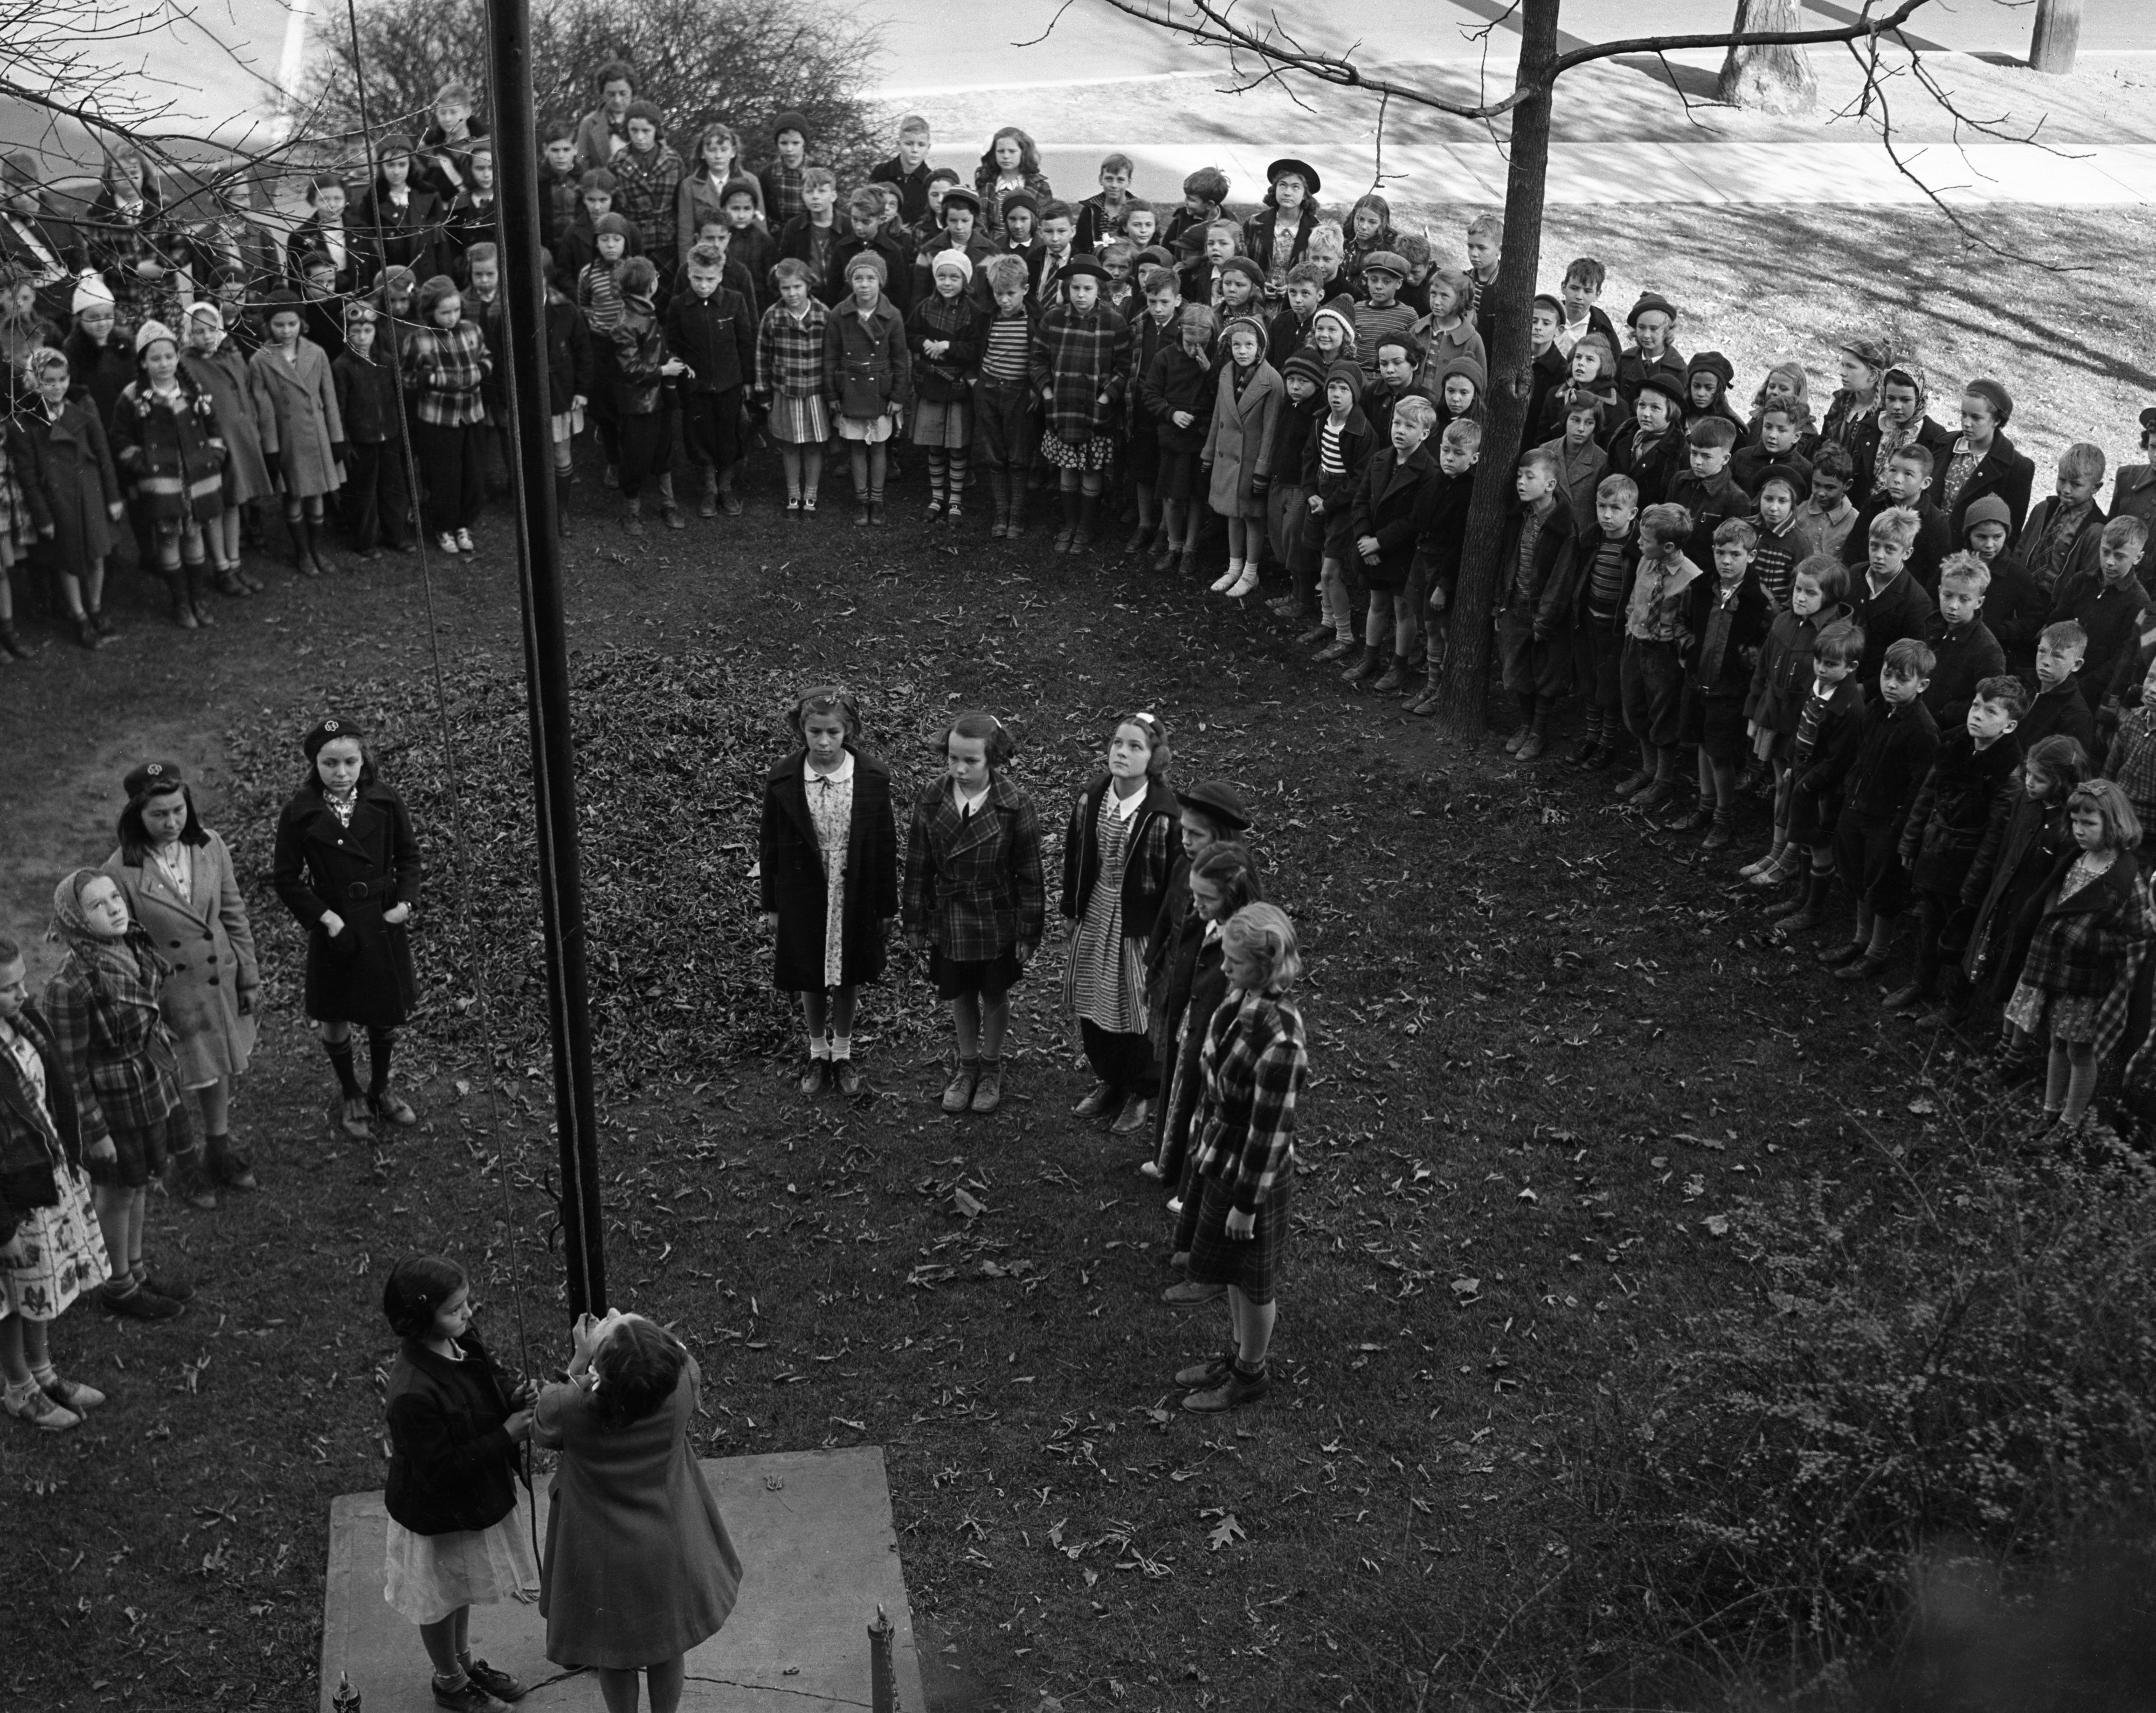 Armistice Day at Eberbach School, 1220 Wells, November 11, 1938 image